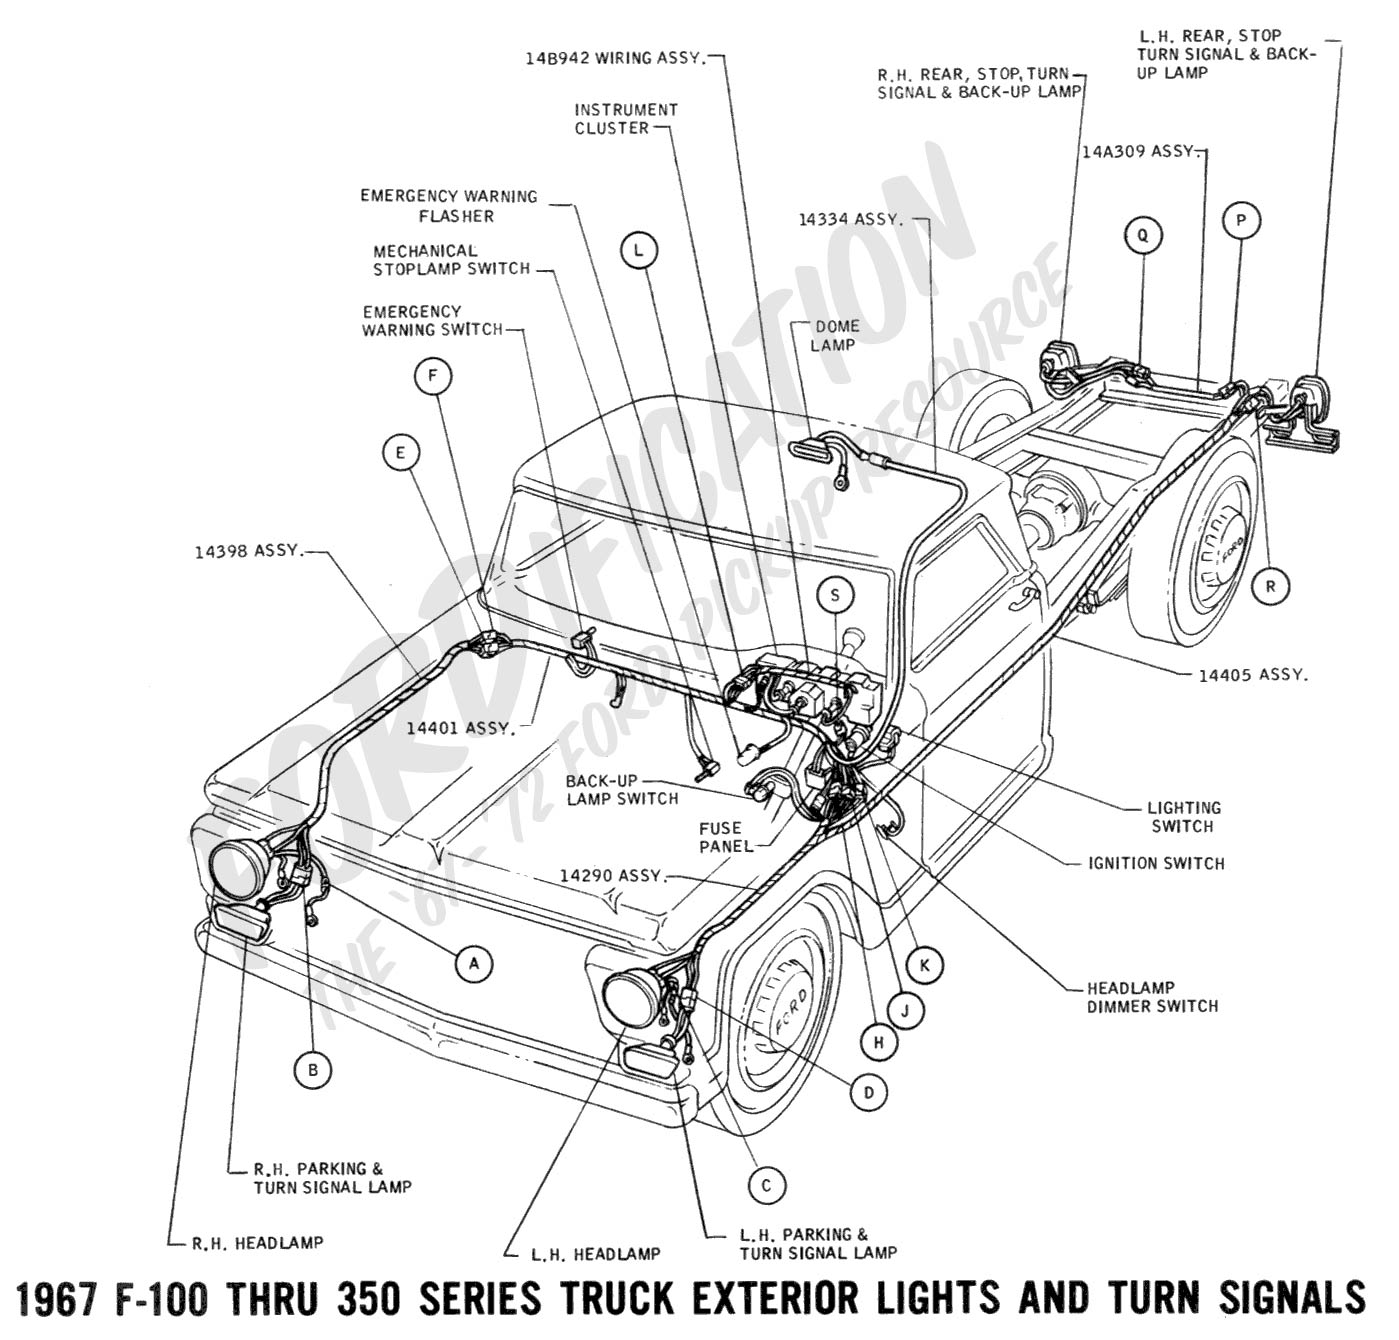 wiring 1967extlights01 ford truck technical drawings and schematics section h wiring 2013 Ford F350 Wiring Diagram at cos-gaming.co